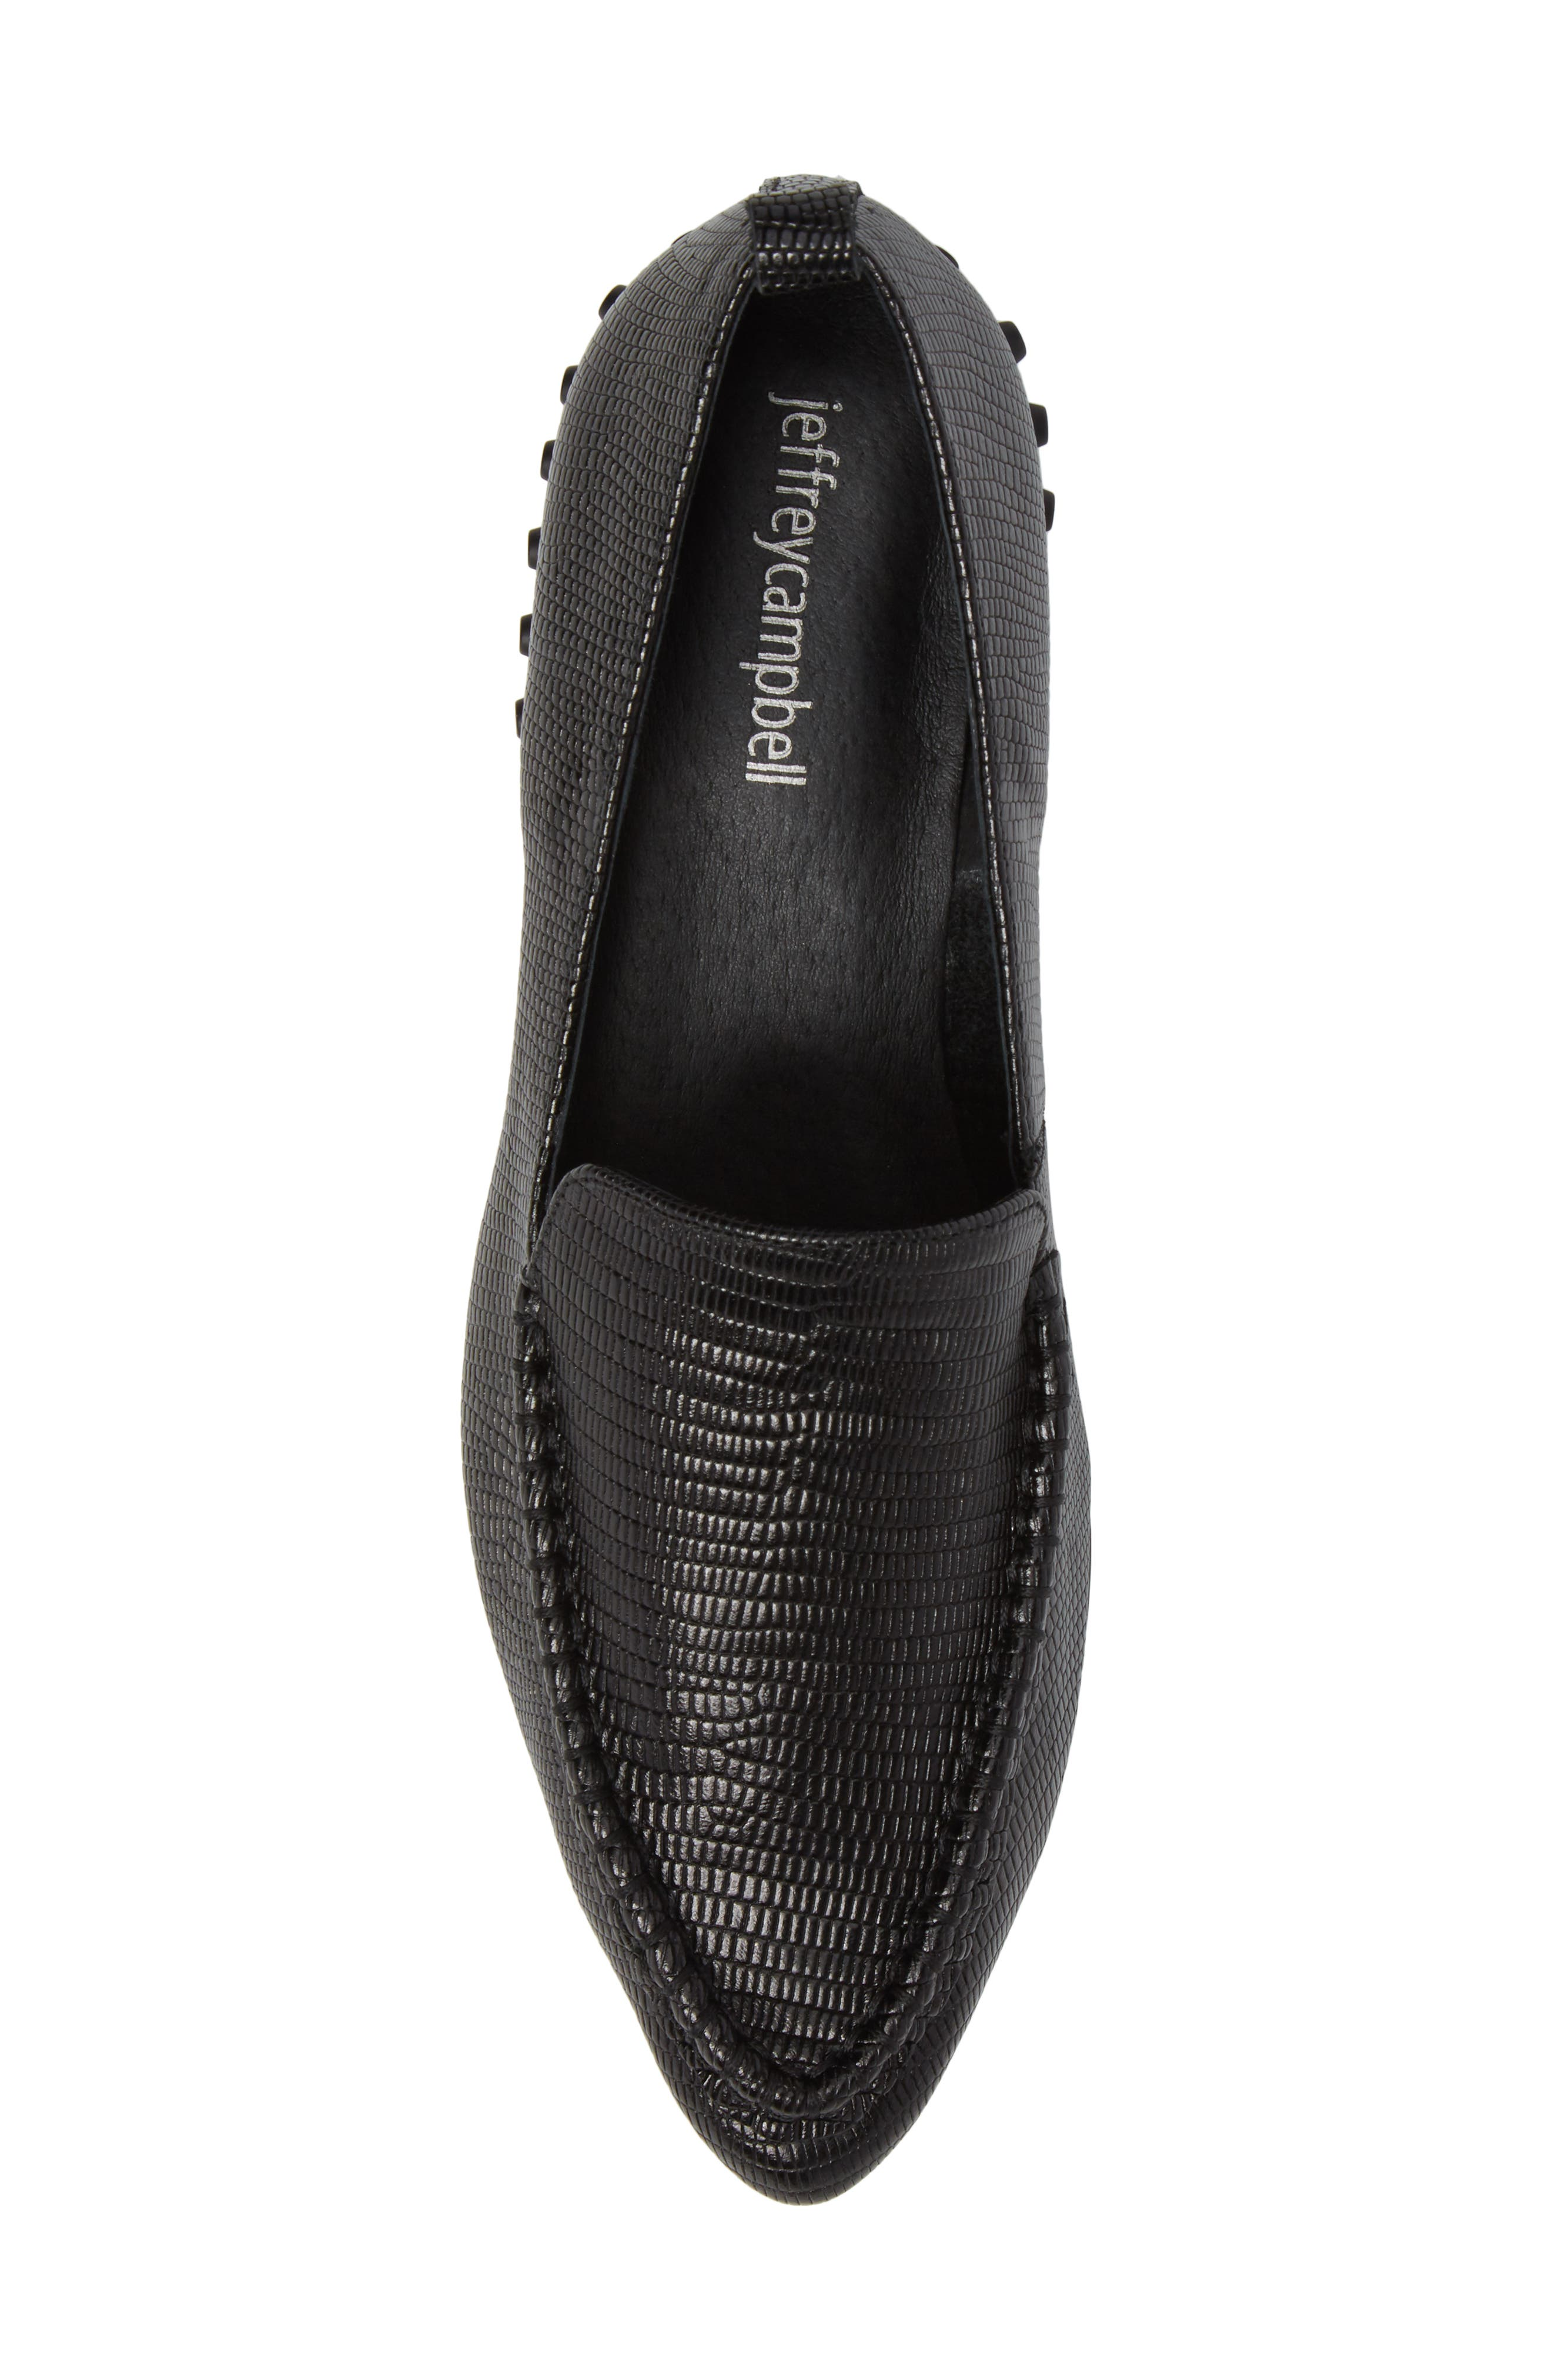 Barnett Studded Loafer,                             Alternate thumbnail 5, color,                             002